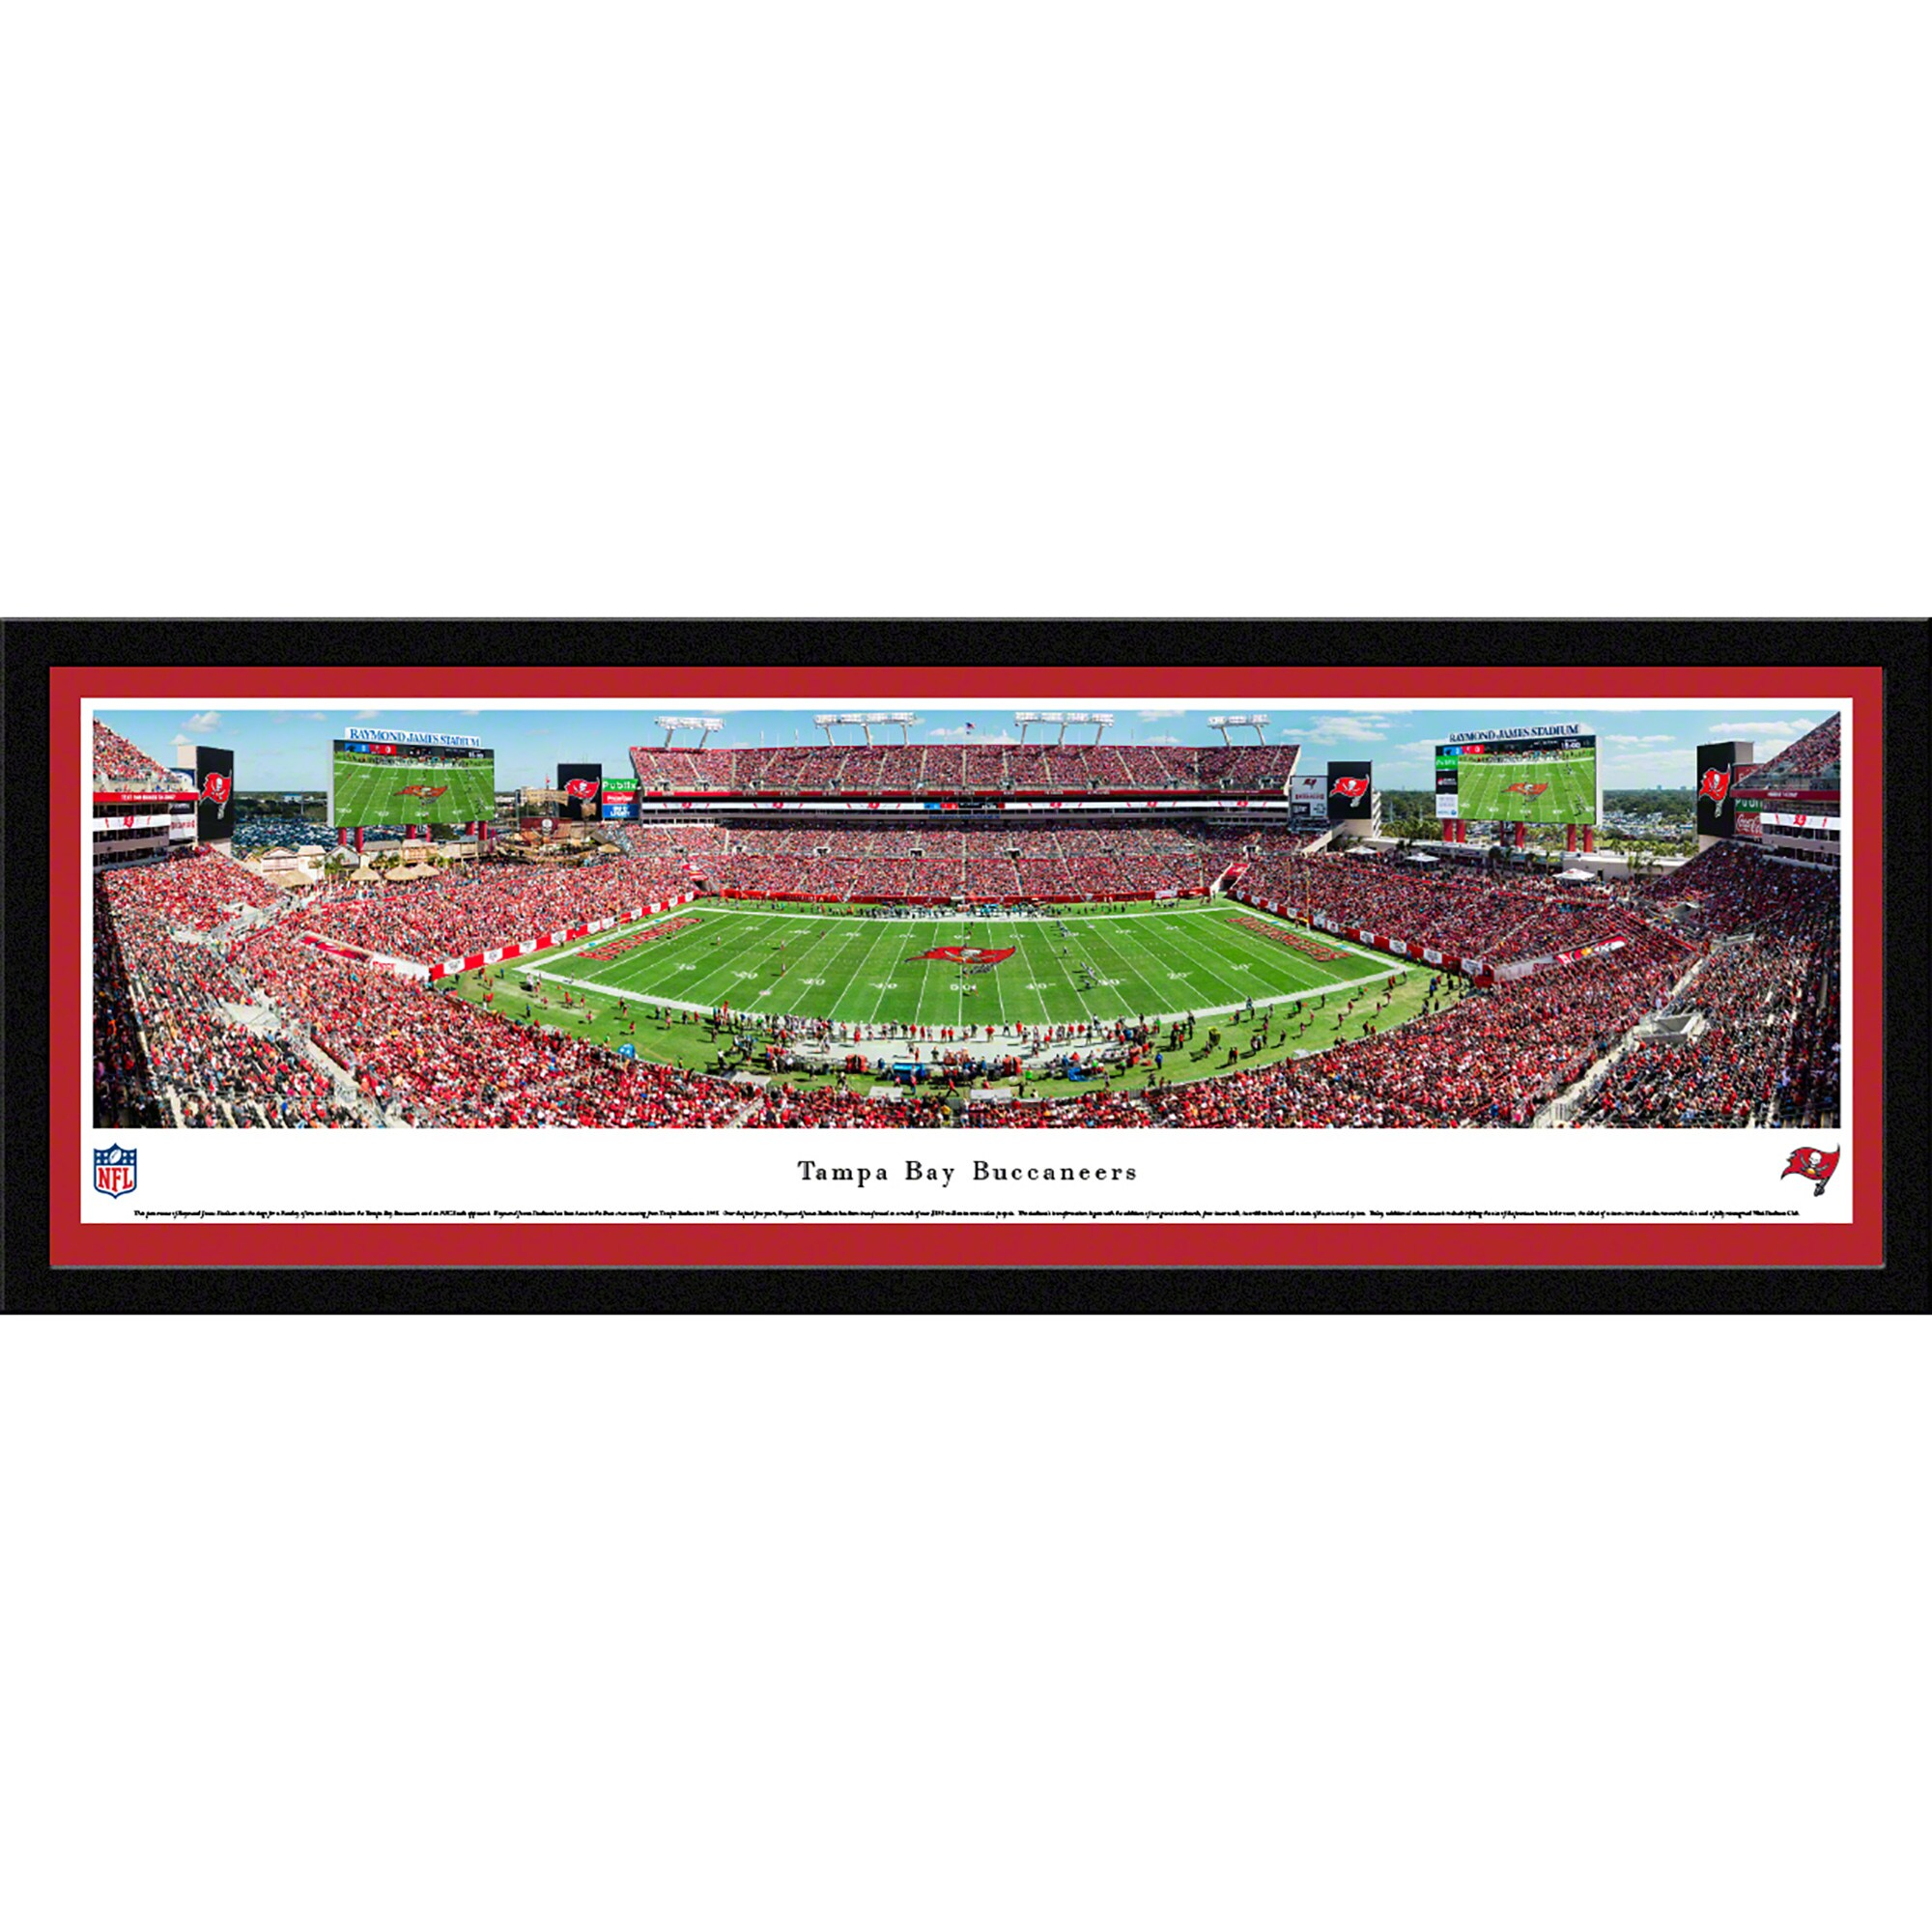 "Tampa Bay Buccaneers 42"" x 15.5"" 50-Yard Line Select Framed Panoramic"